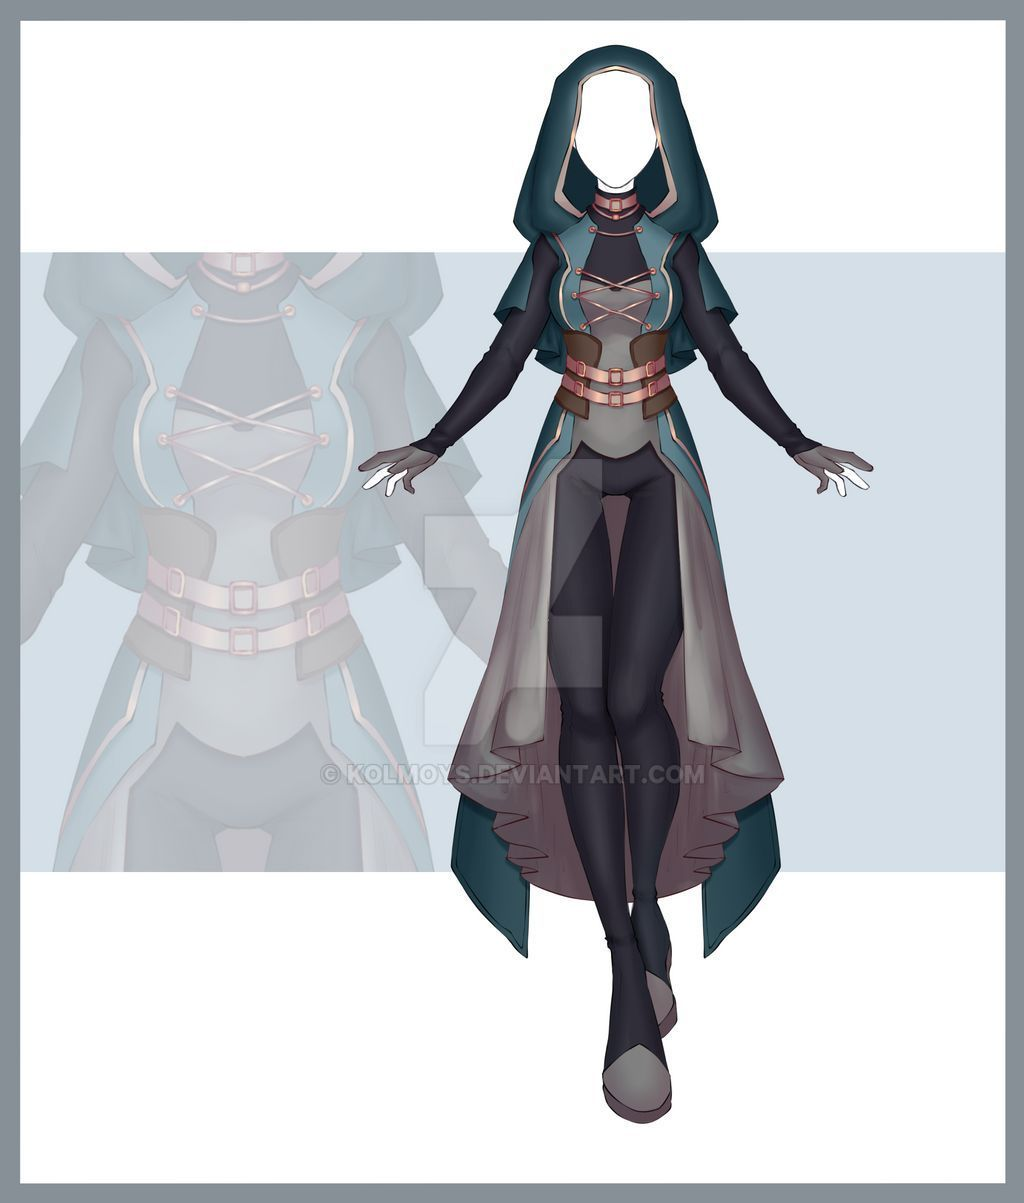 Photo of [Close] Adoptable Outfit Auction 294 by Kolmoys on DeviantArt